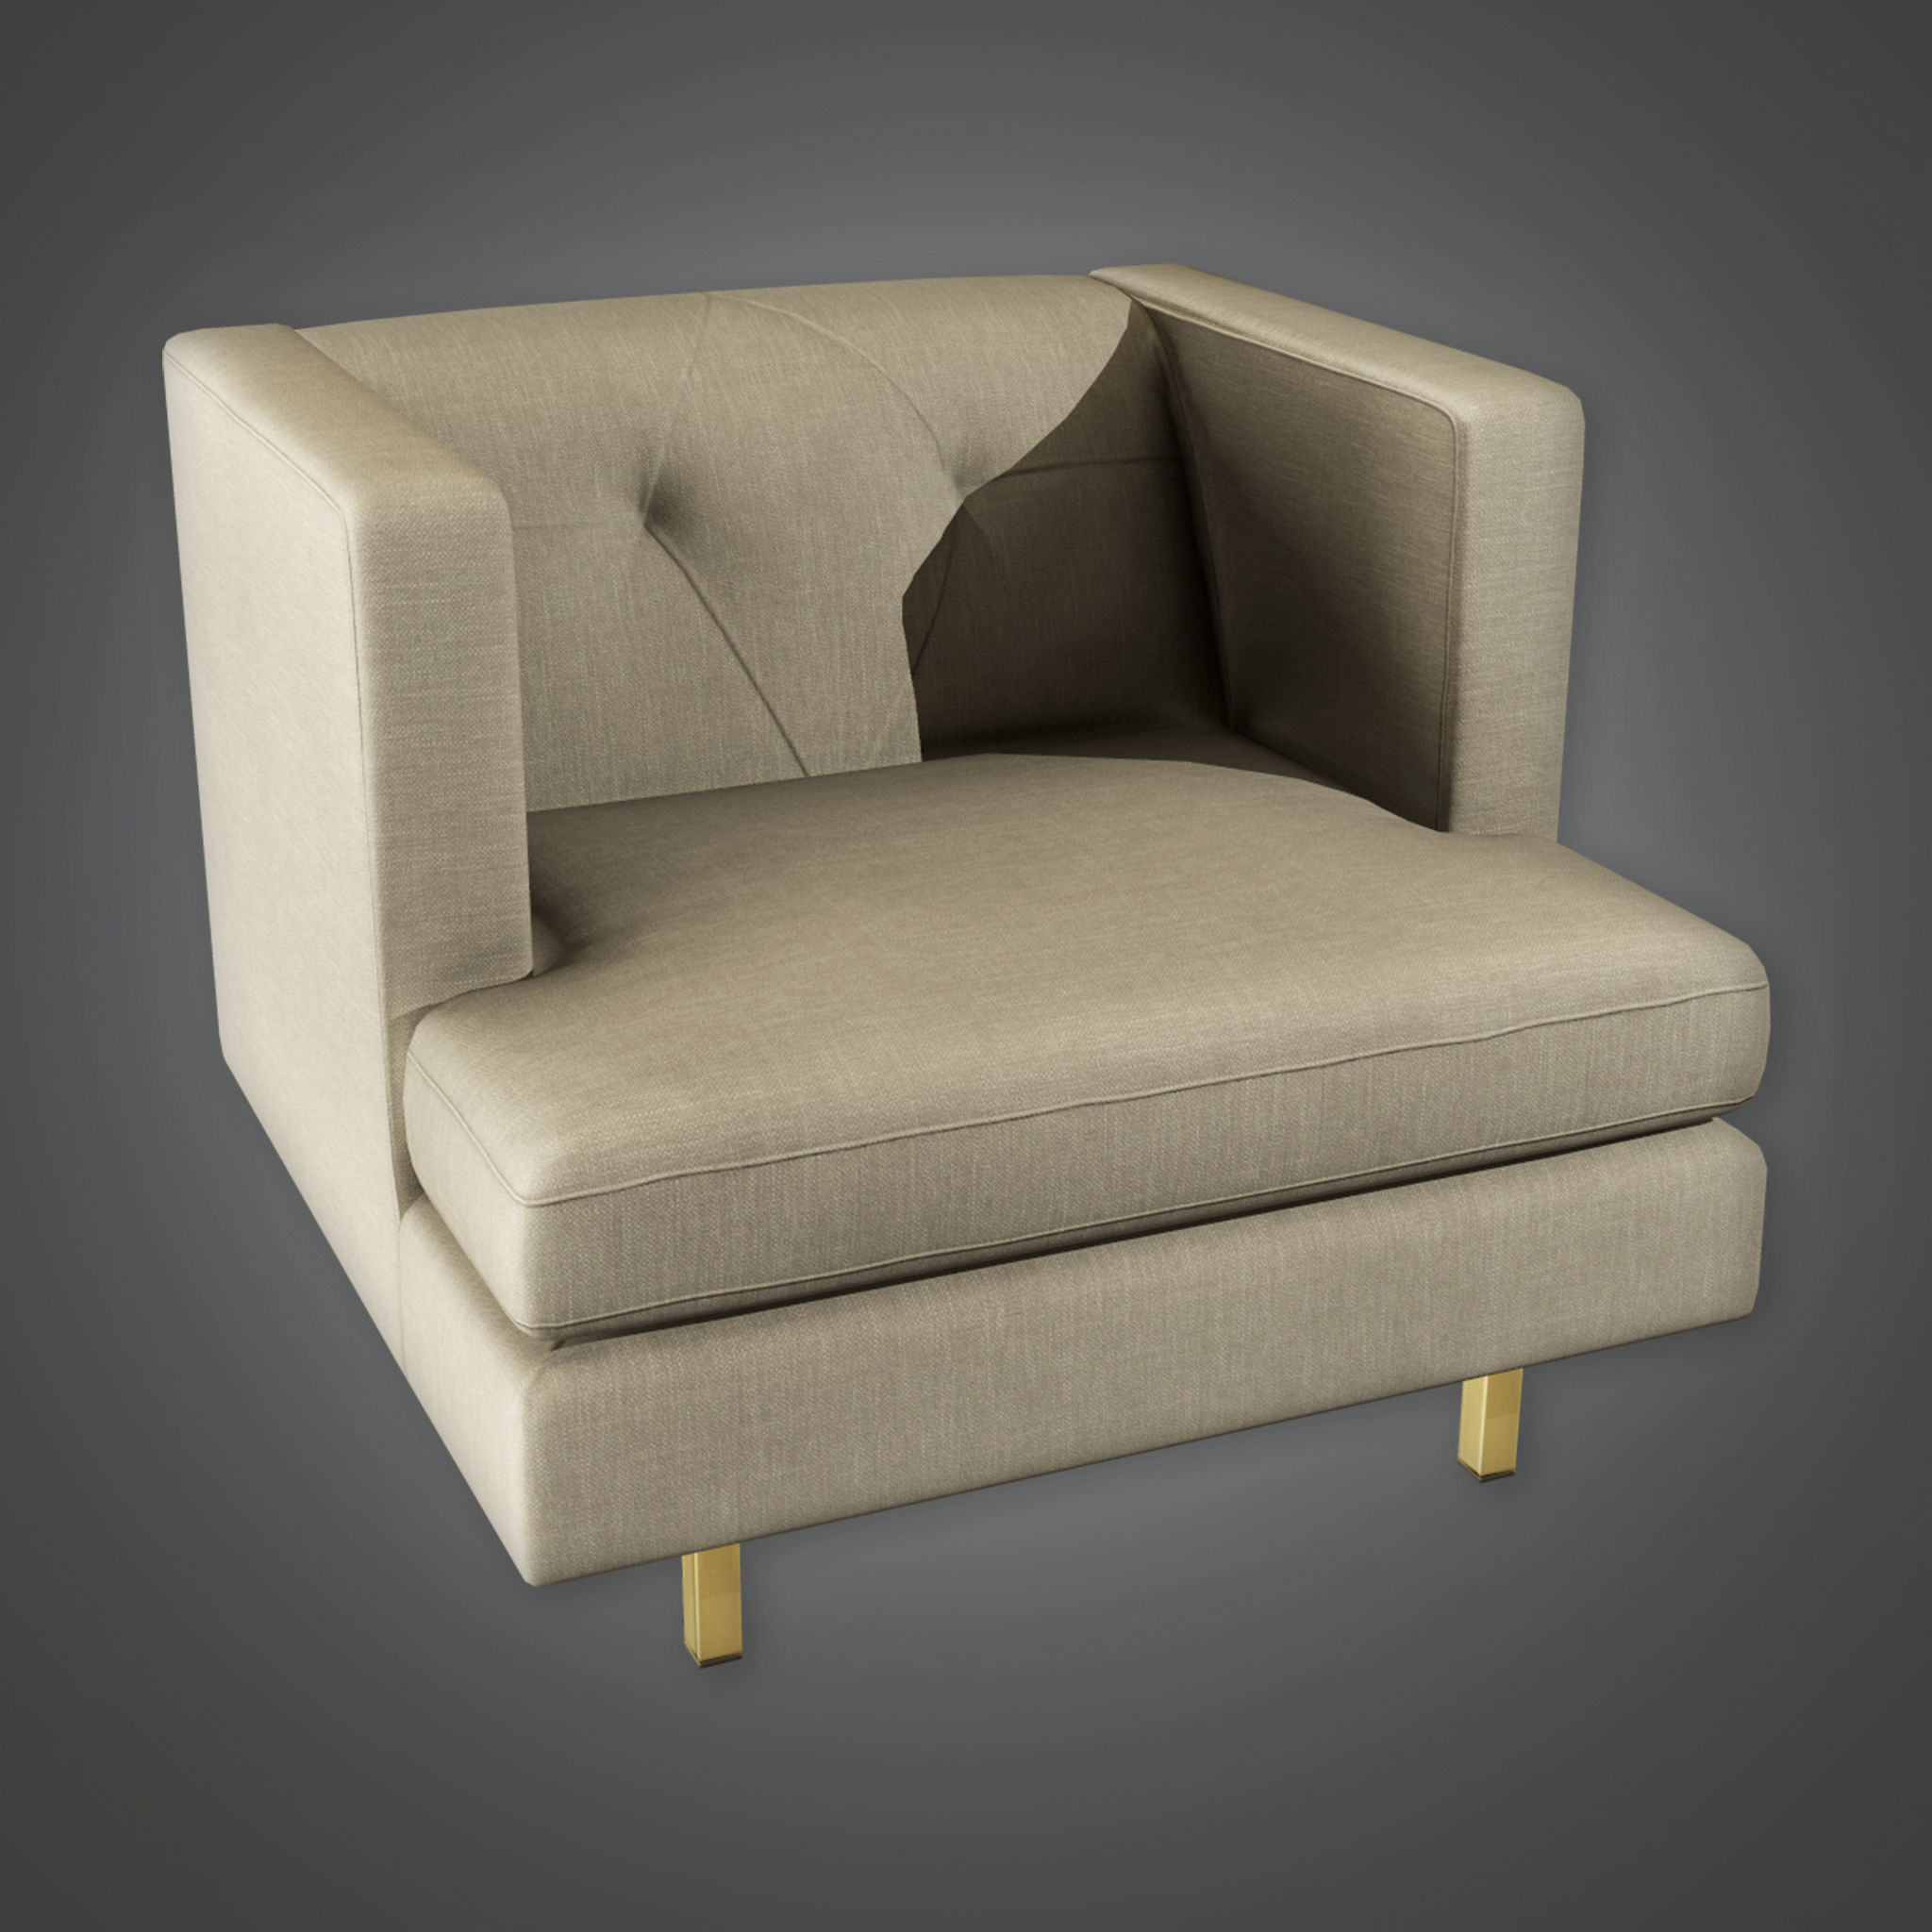 ARV1 - Accent Chair 01a - Arch Viz - Game Ready